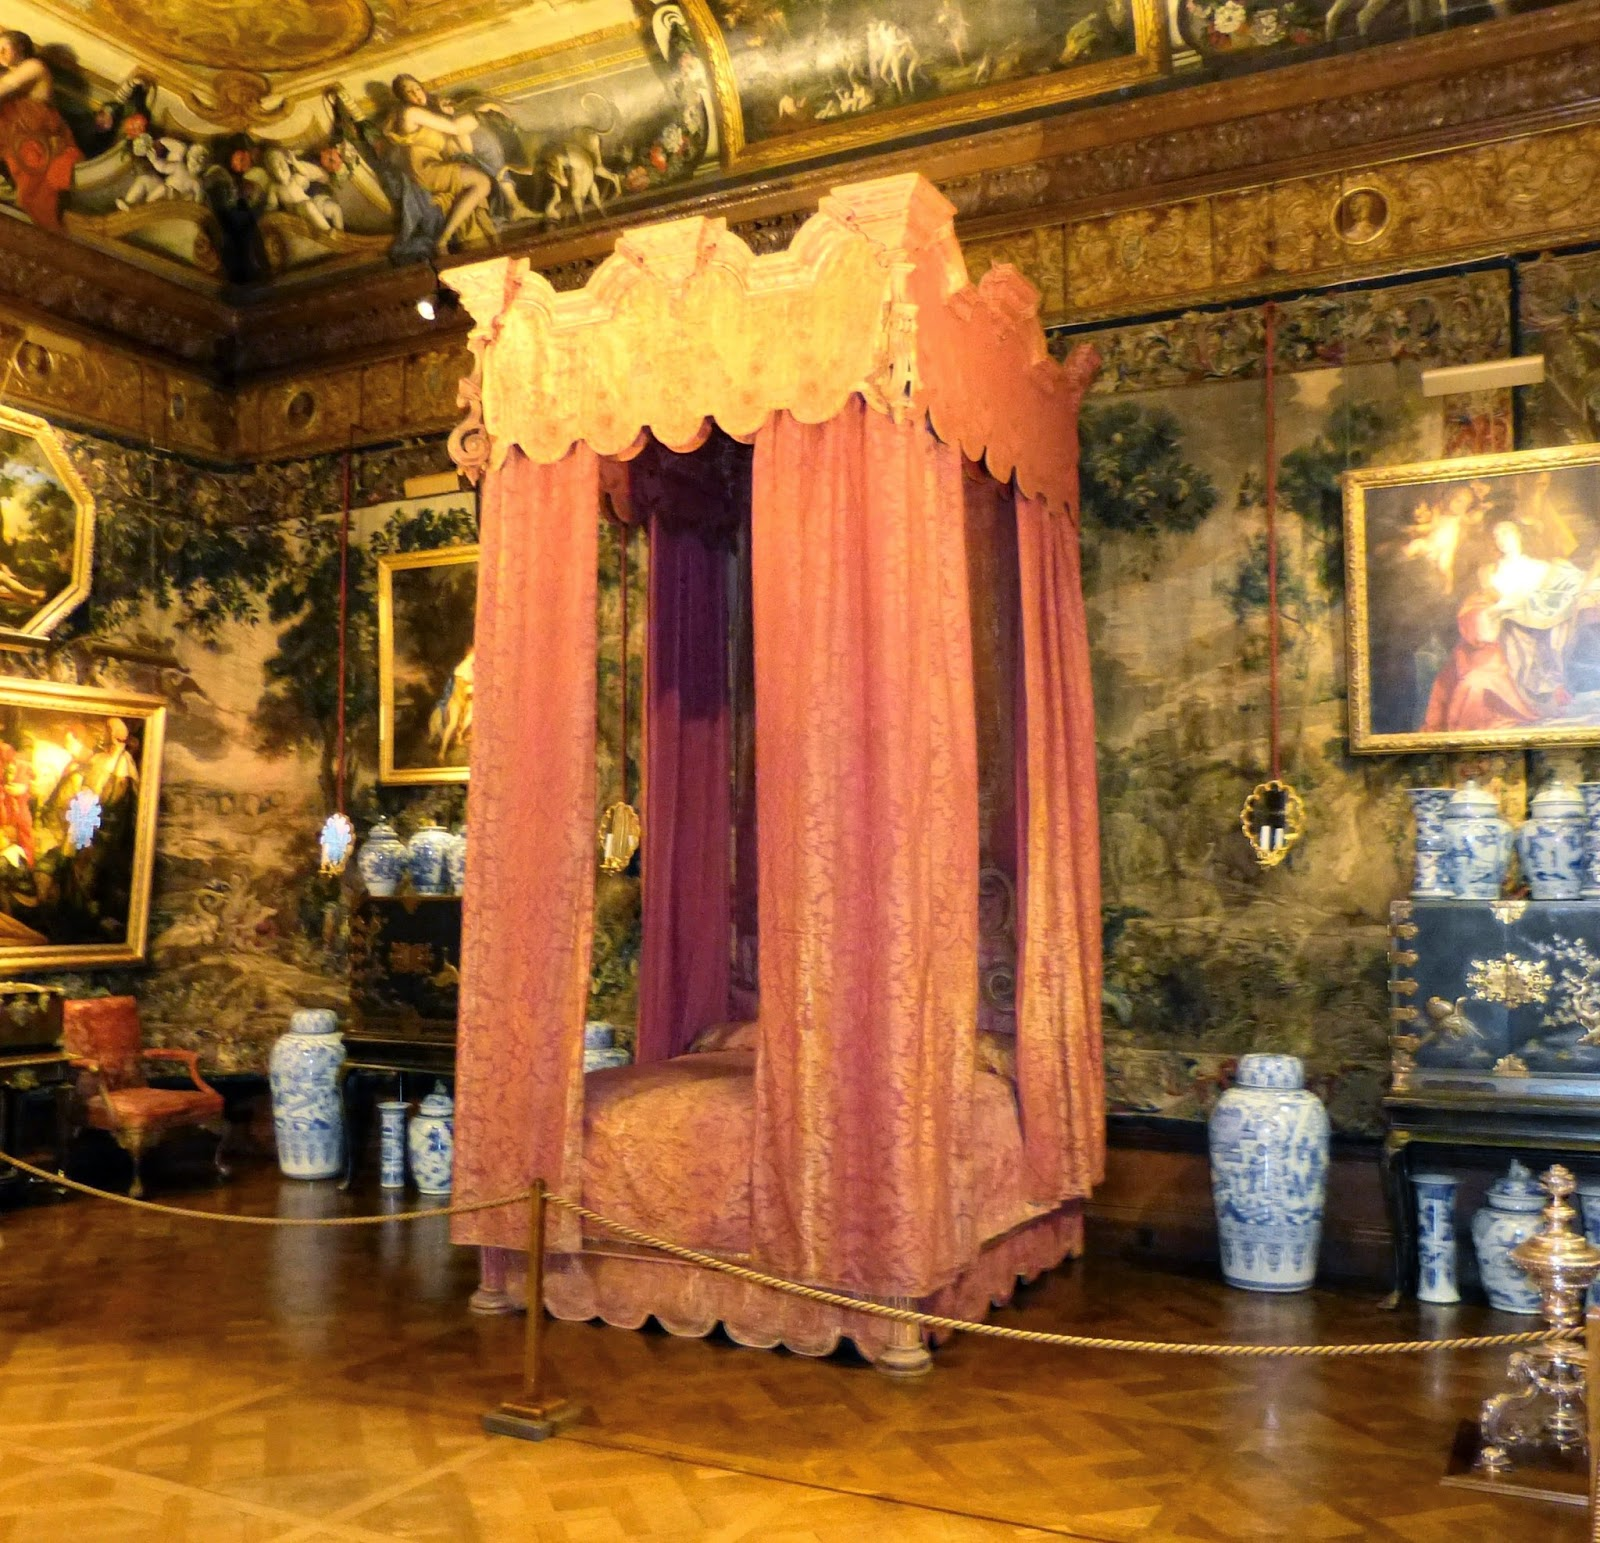 State Bedroom, Chatsworth